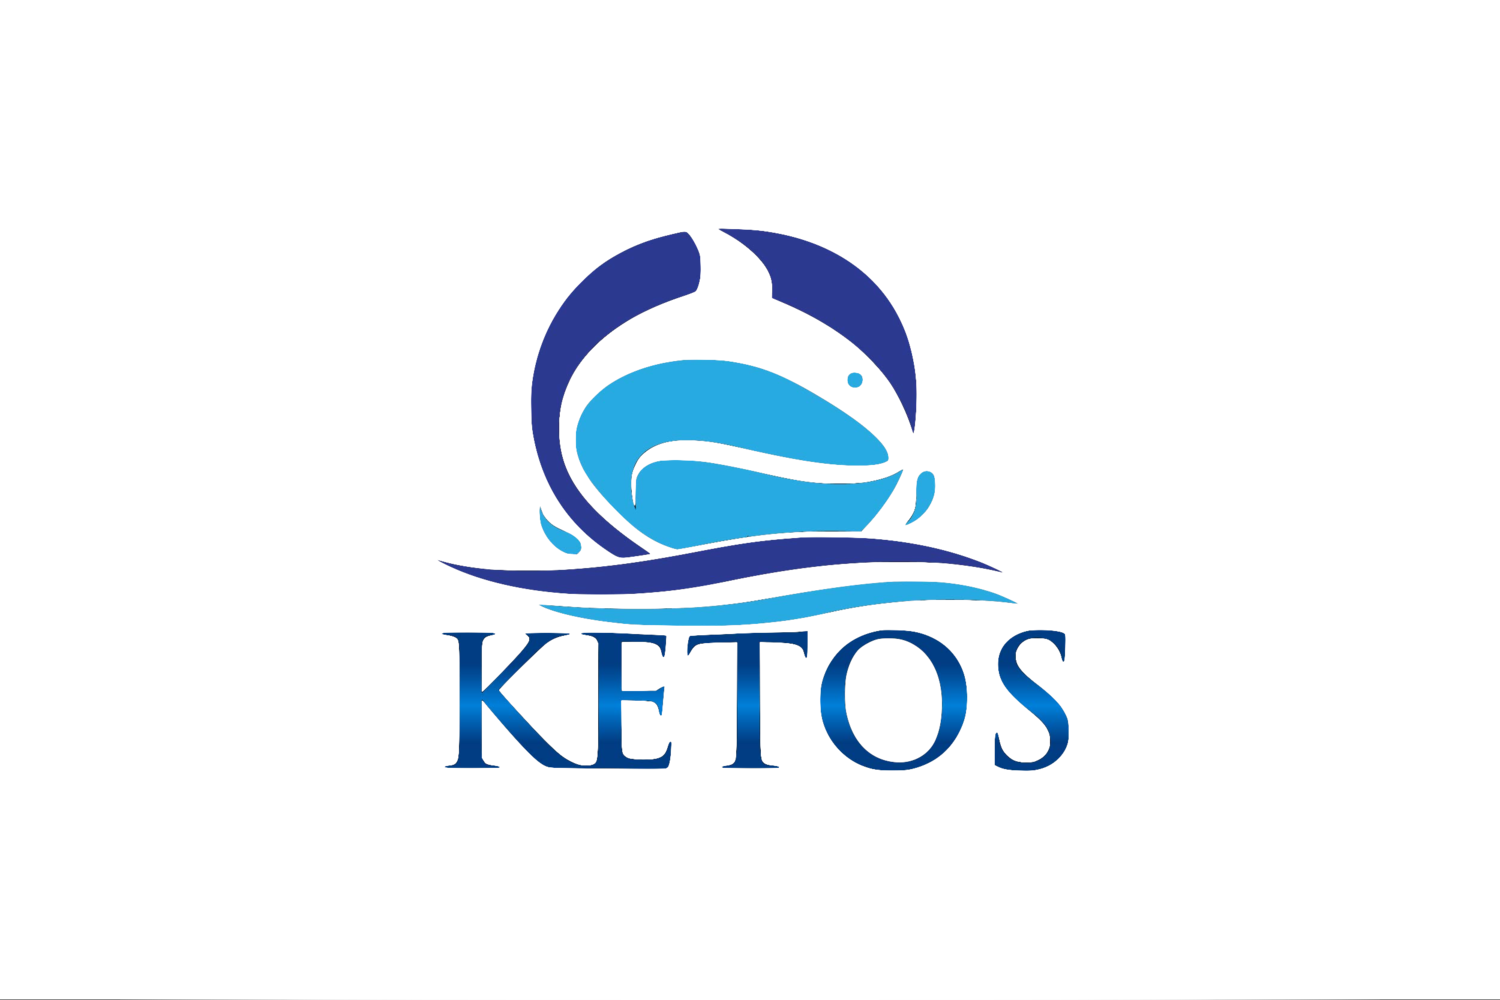 Ketos raises $9 million to detect toxins and leaks in water supplies